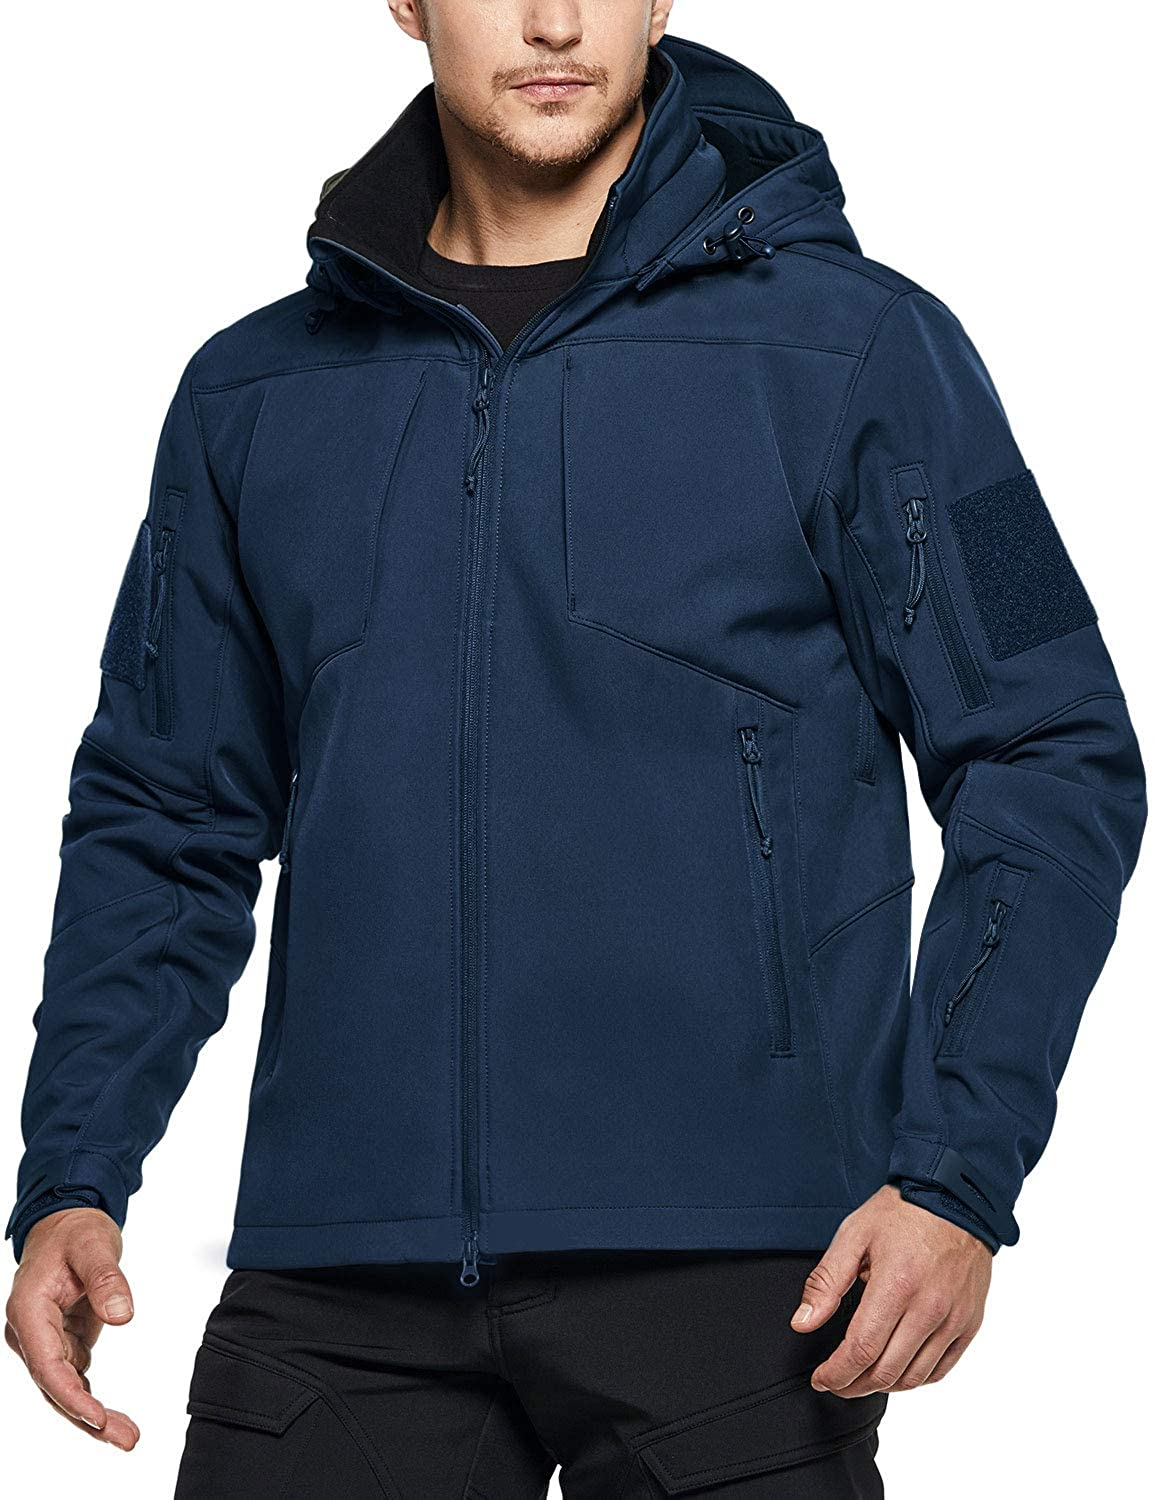 CQR Men's Tactical Softshell Detachable Hoodie Hiking Hunting EDC Lightweight Fleece Coat Jacket